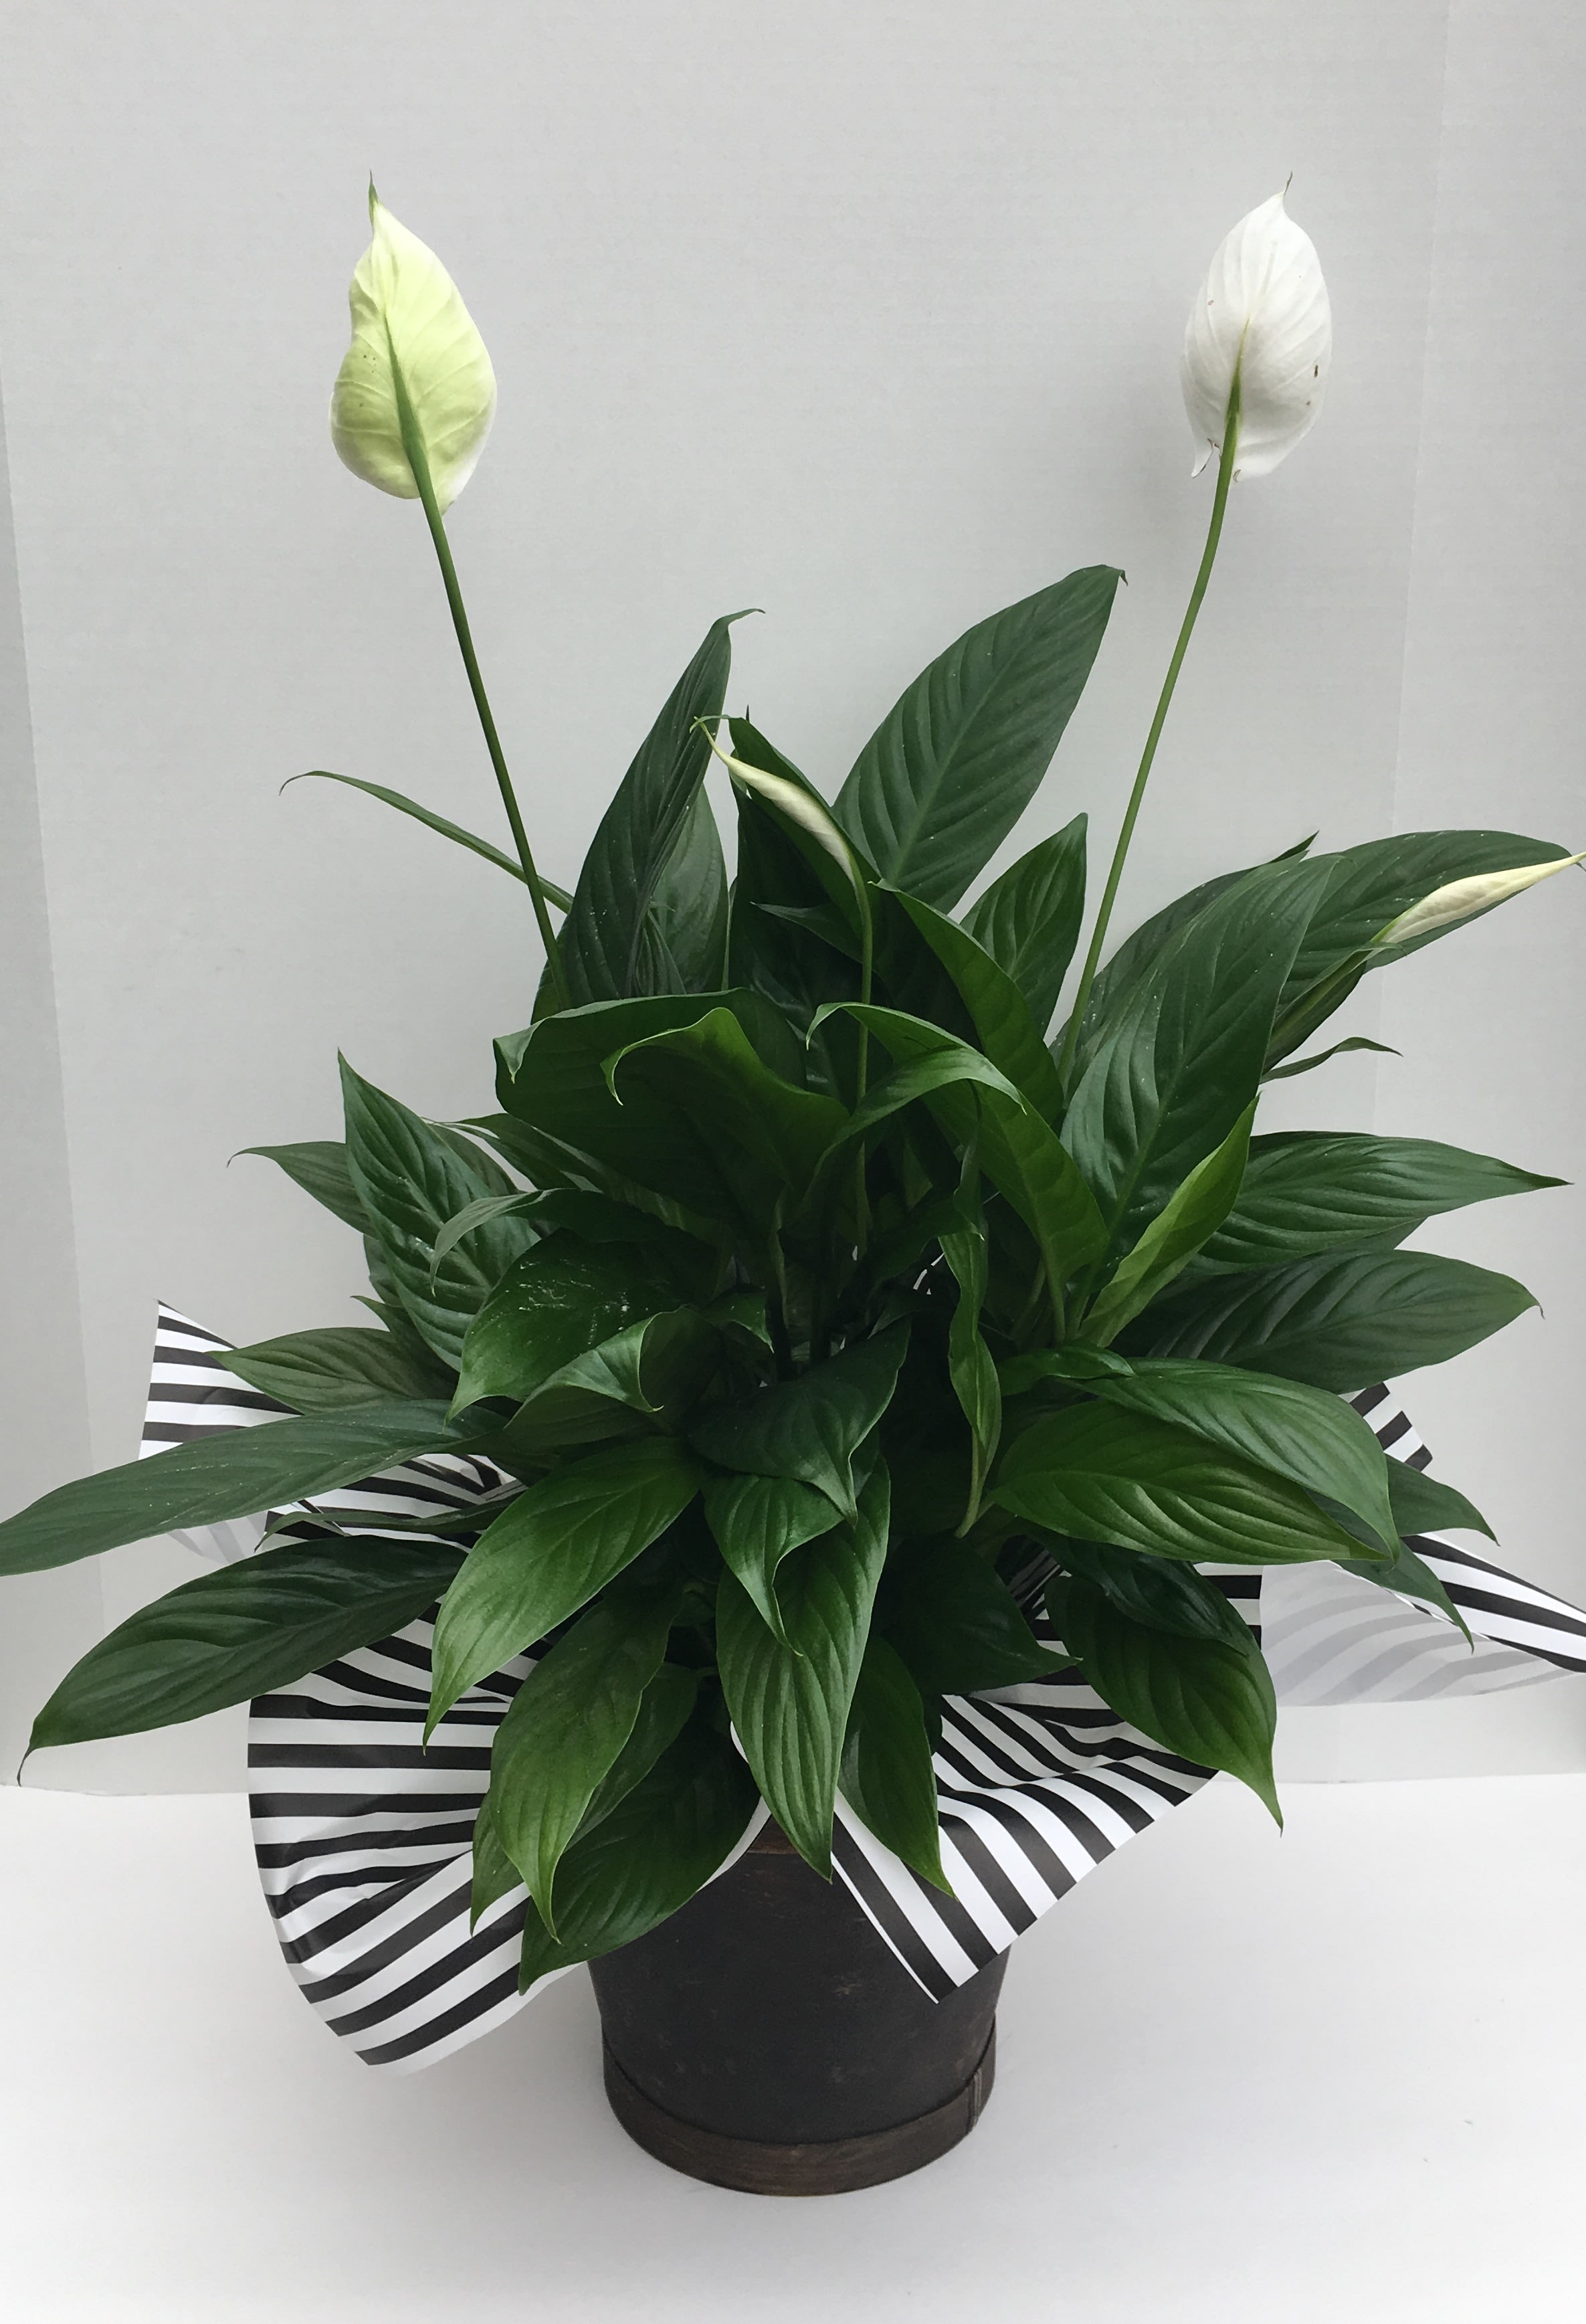 Peace Lily Plant in Bakersfield, CA | House of Flowers on corn plant houseplant, bamboo palm houseplant, dragon tree houseplant, kentia palm houseplant, snake plant houseplant, kalanchoe houseplant, begonia houseplant, nephthytis houseplant, rubber plant houseplant, philodendron houseplant, purple wandering jew houseplant, ivy houseplant, cactus houseplant, rubber tree houseplant, schefflera houseplant, dieffenbachia houseplant, boston fern houseplant, peperomia houseplant, dracaena houseplant,